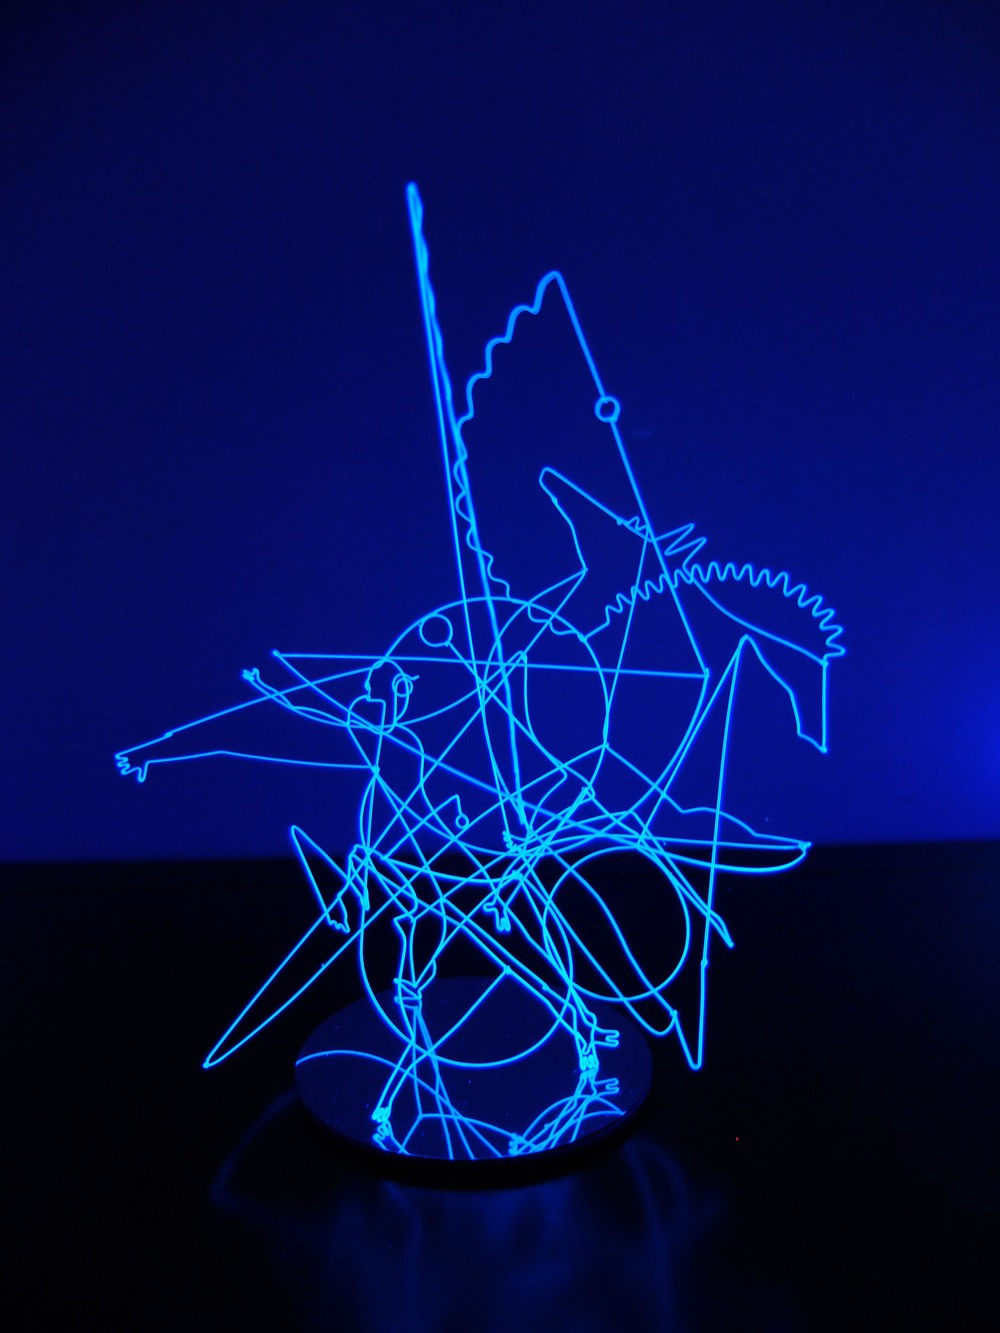 Lu Xinjian 陆新建, Wired Space No.5 天马行空之五, Wire, paint and resin 铁丝、漆、树脂, 44 x 39.5 x 27 cm